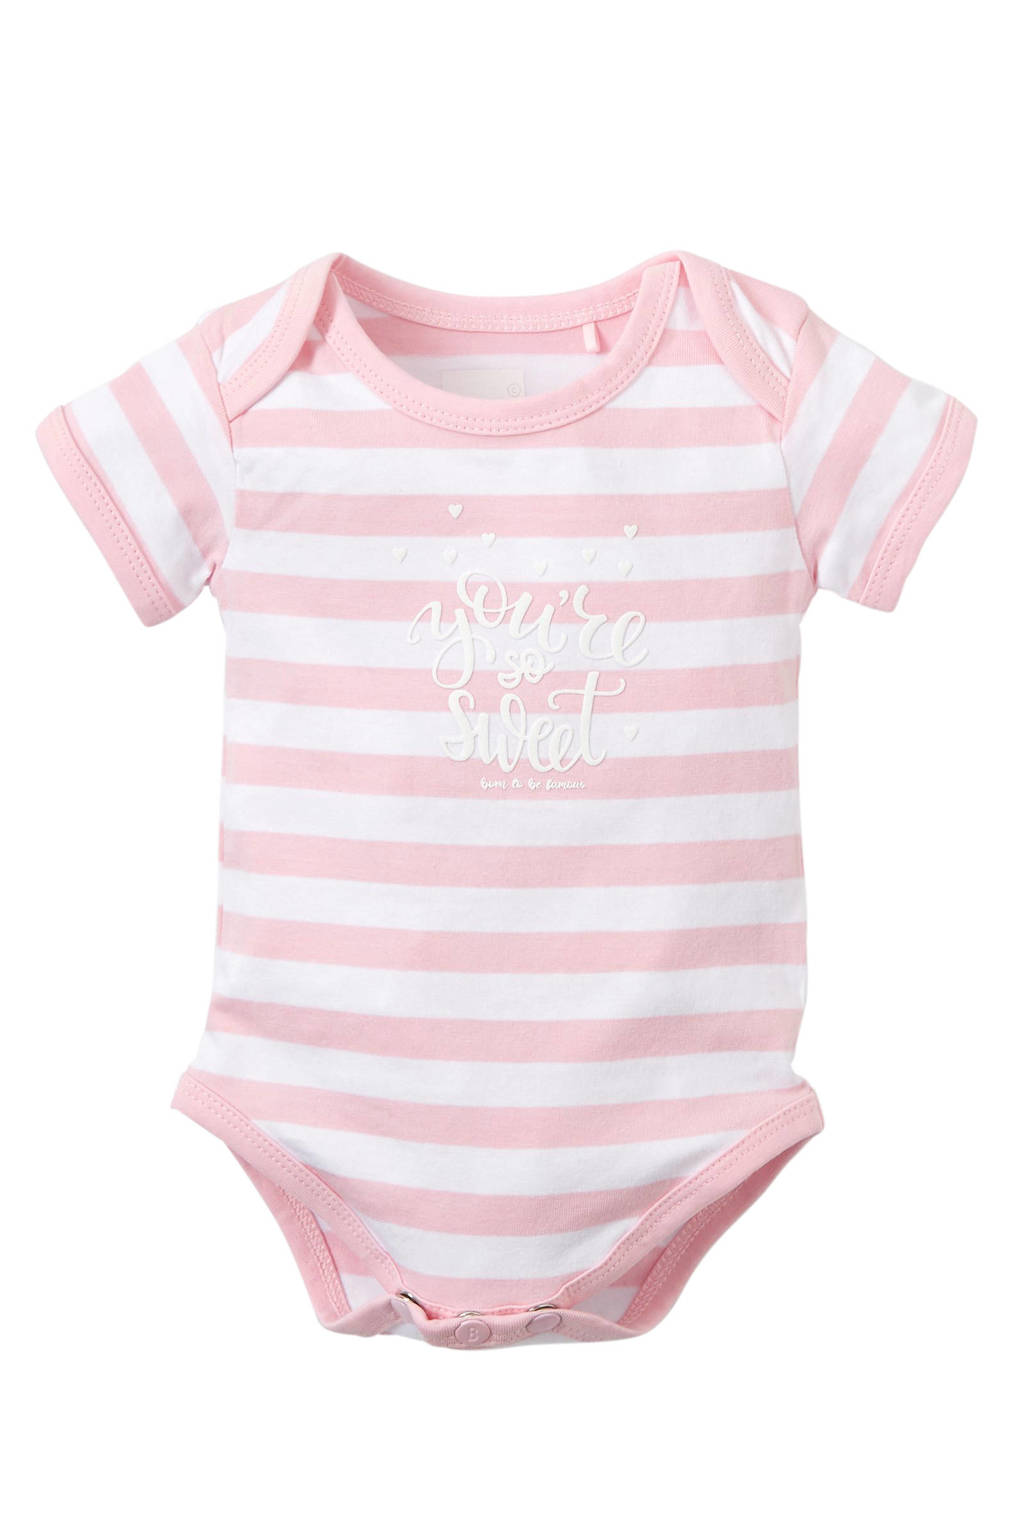 born to be famous. newborn baby romper, Roze/wit